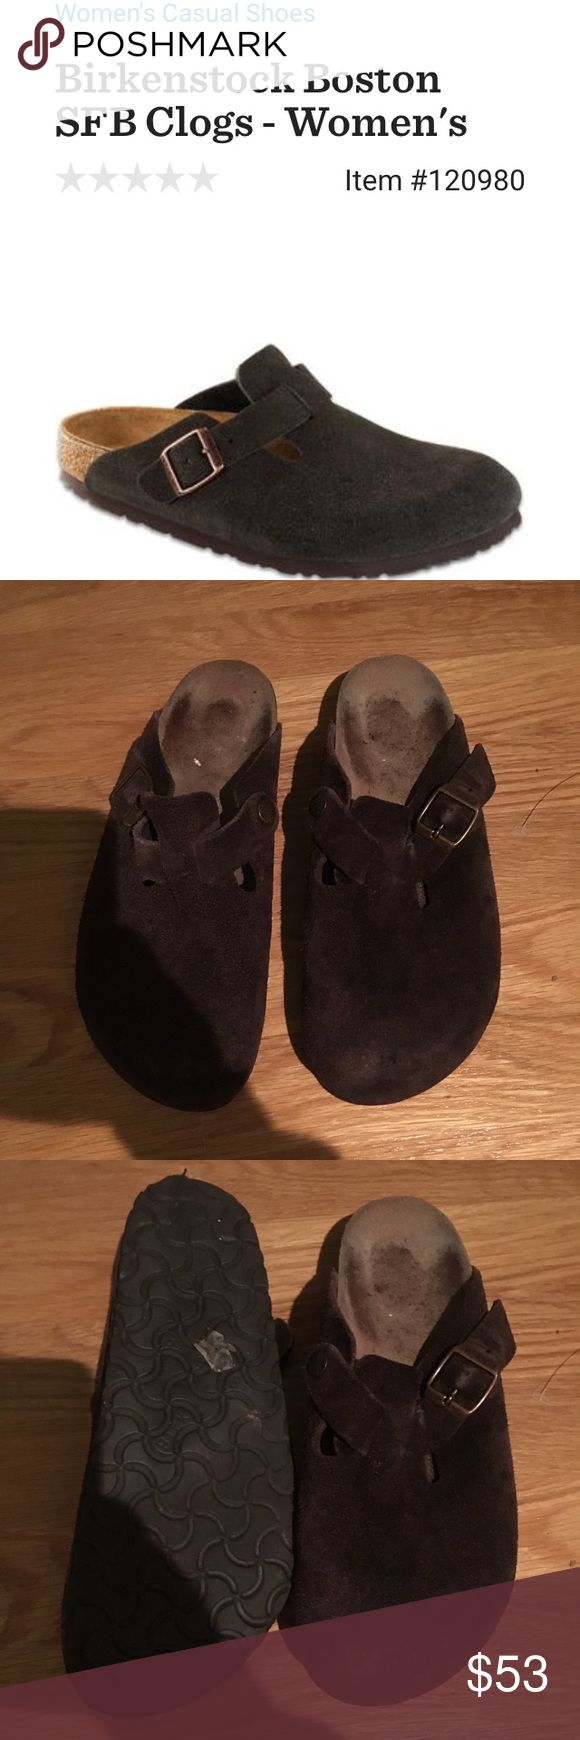 Birkenstock 'Boston' shoes in Mocha suede Size 8 Birkenstock Boston Slides in Mocha Sues. Gently worn, in good condition no stains or tears! Birkenstock Shoes